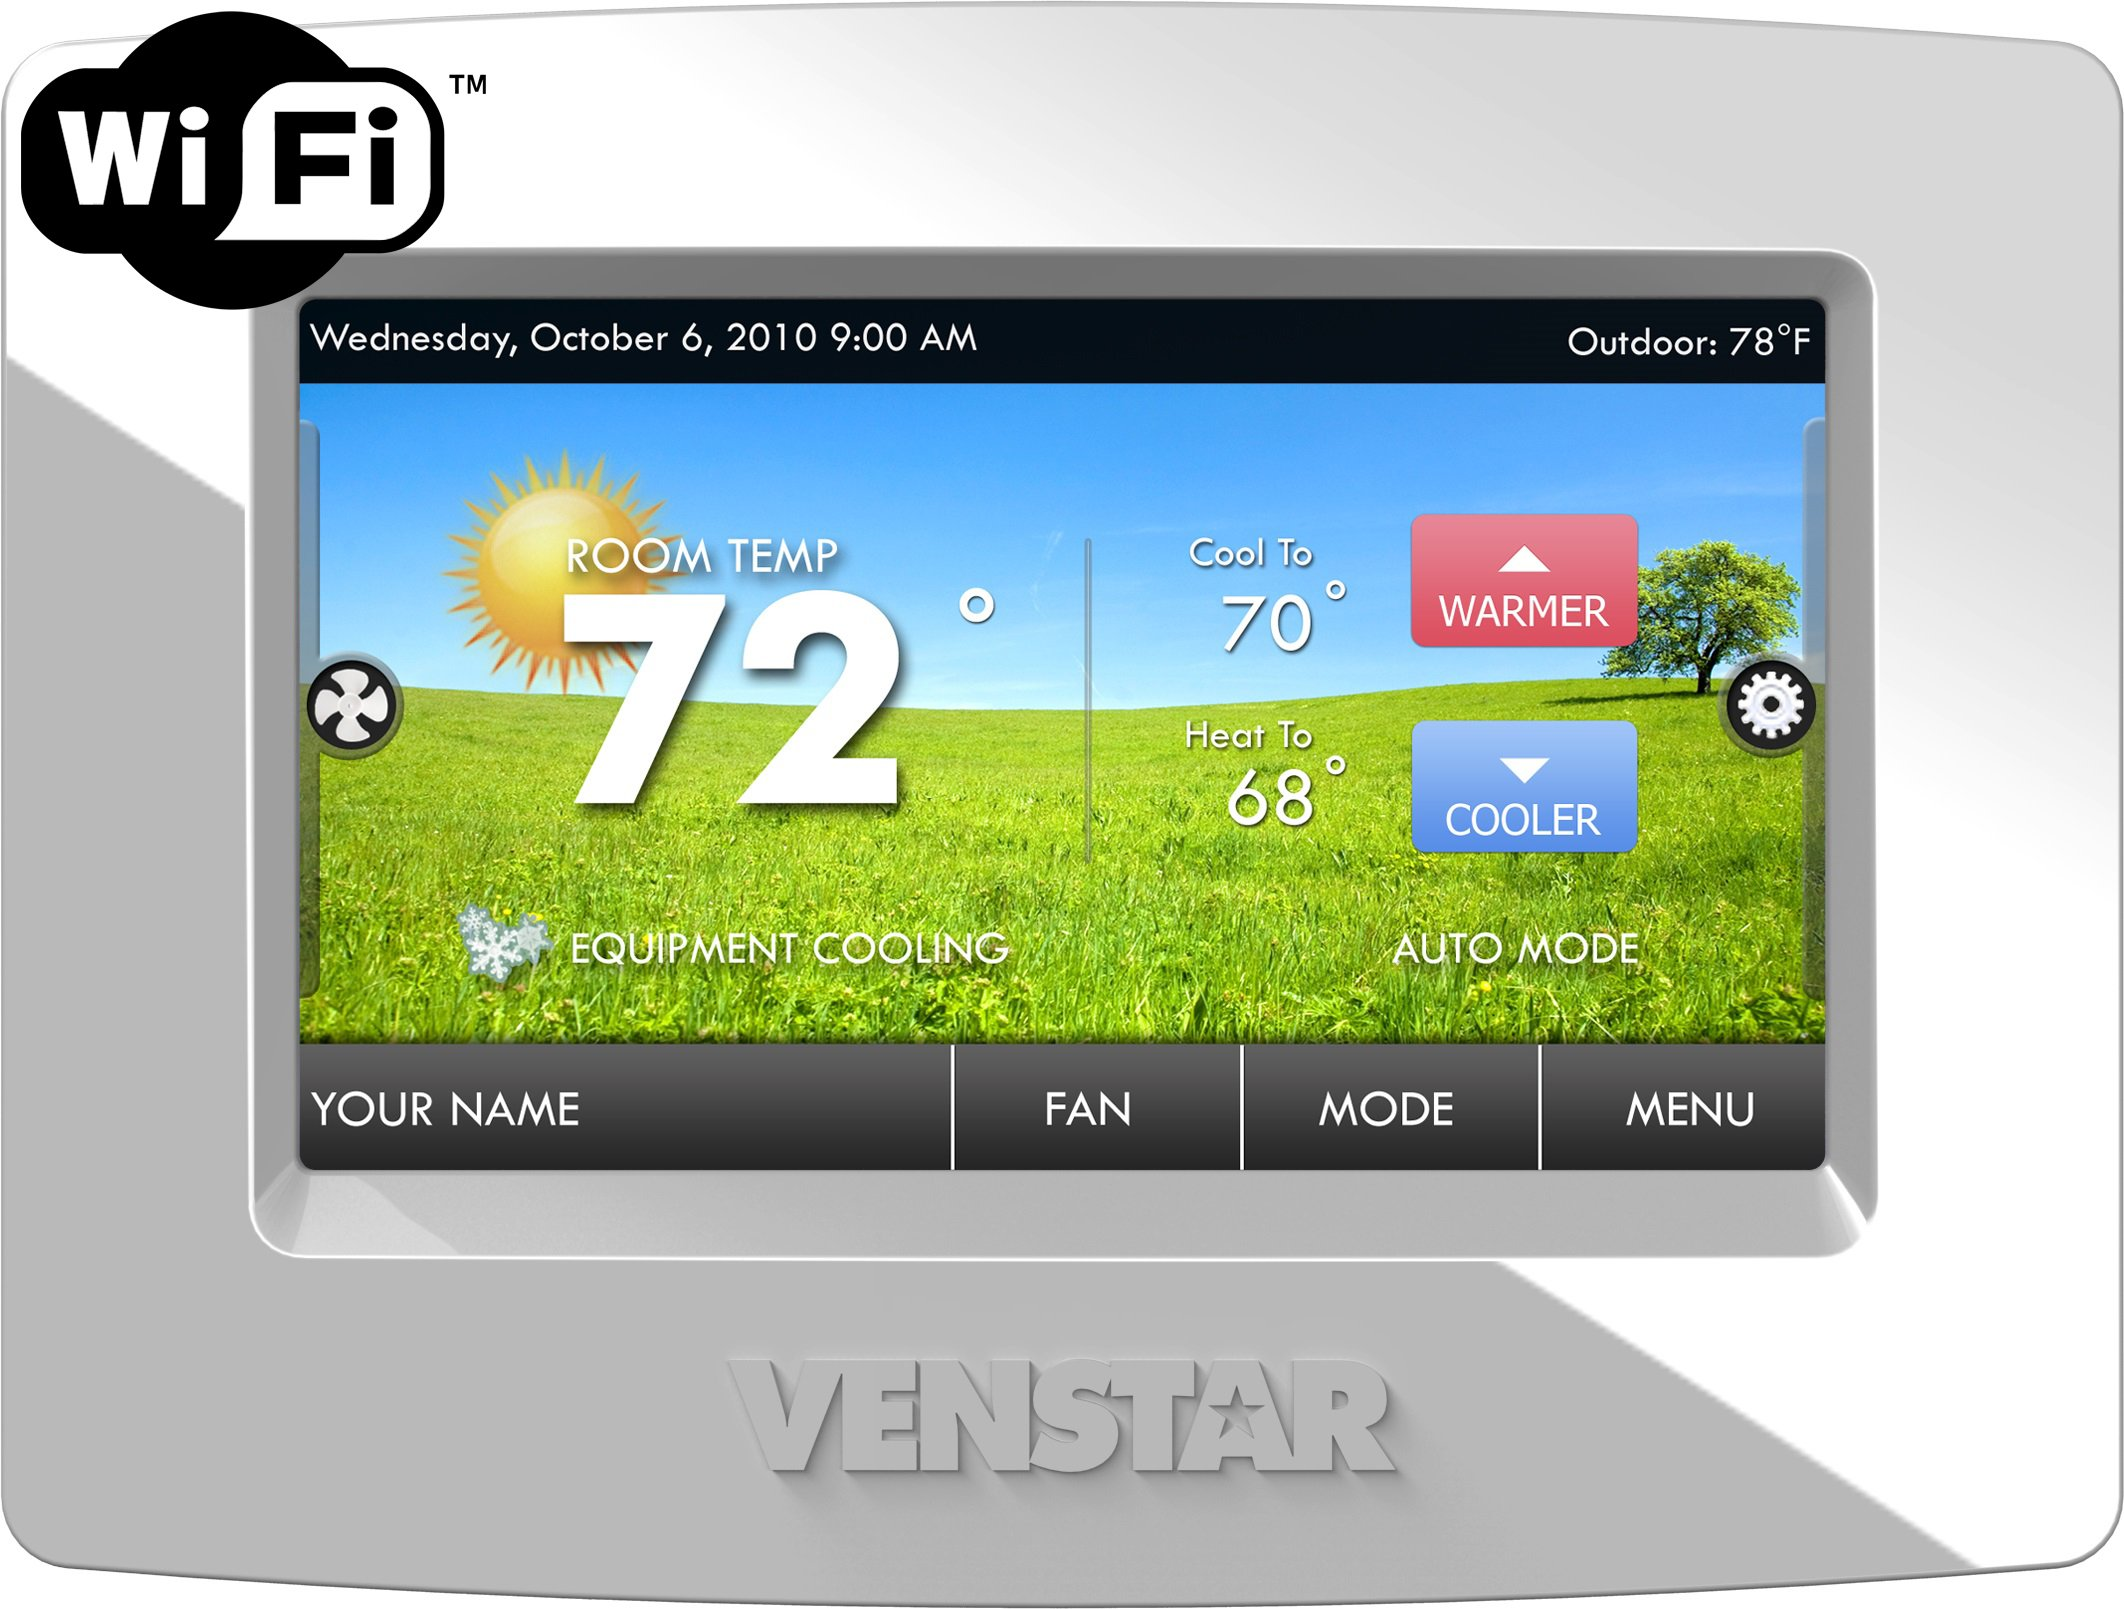 Venstar Thermostat, Built in Wi-Fi, Colortouch, Humidity Control, Works with Amazon Alexa